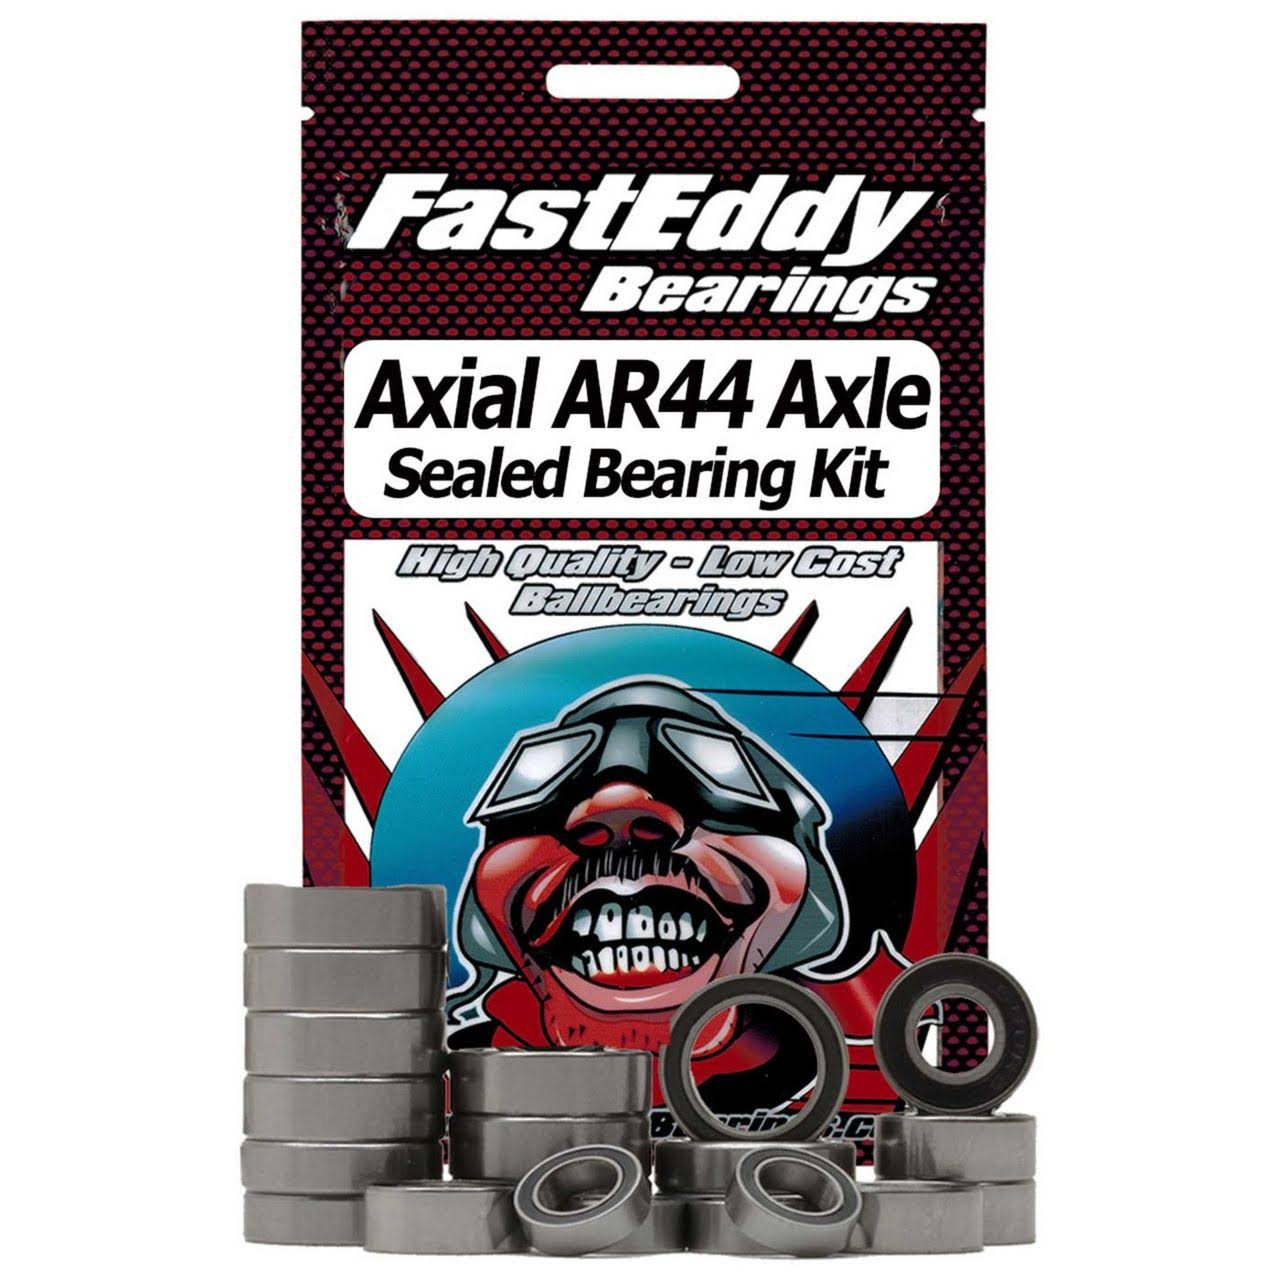 FastEddy TFE4473 Axial AR44 Axle Sealed Bearing Kit